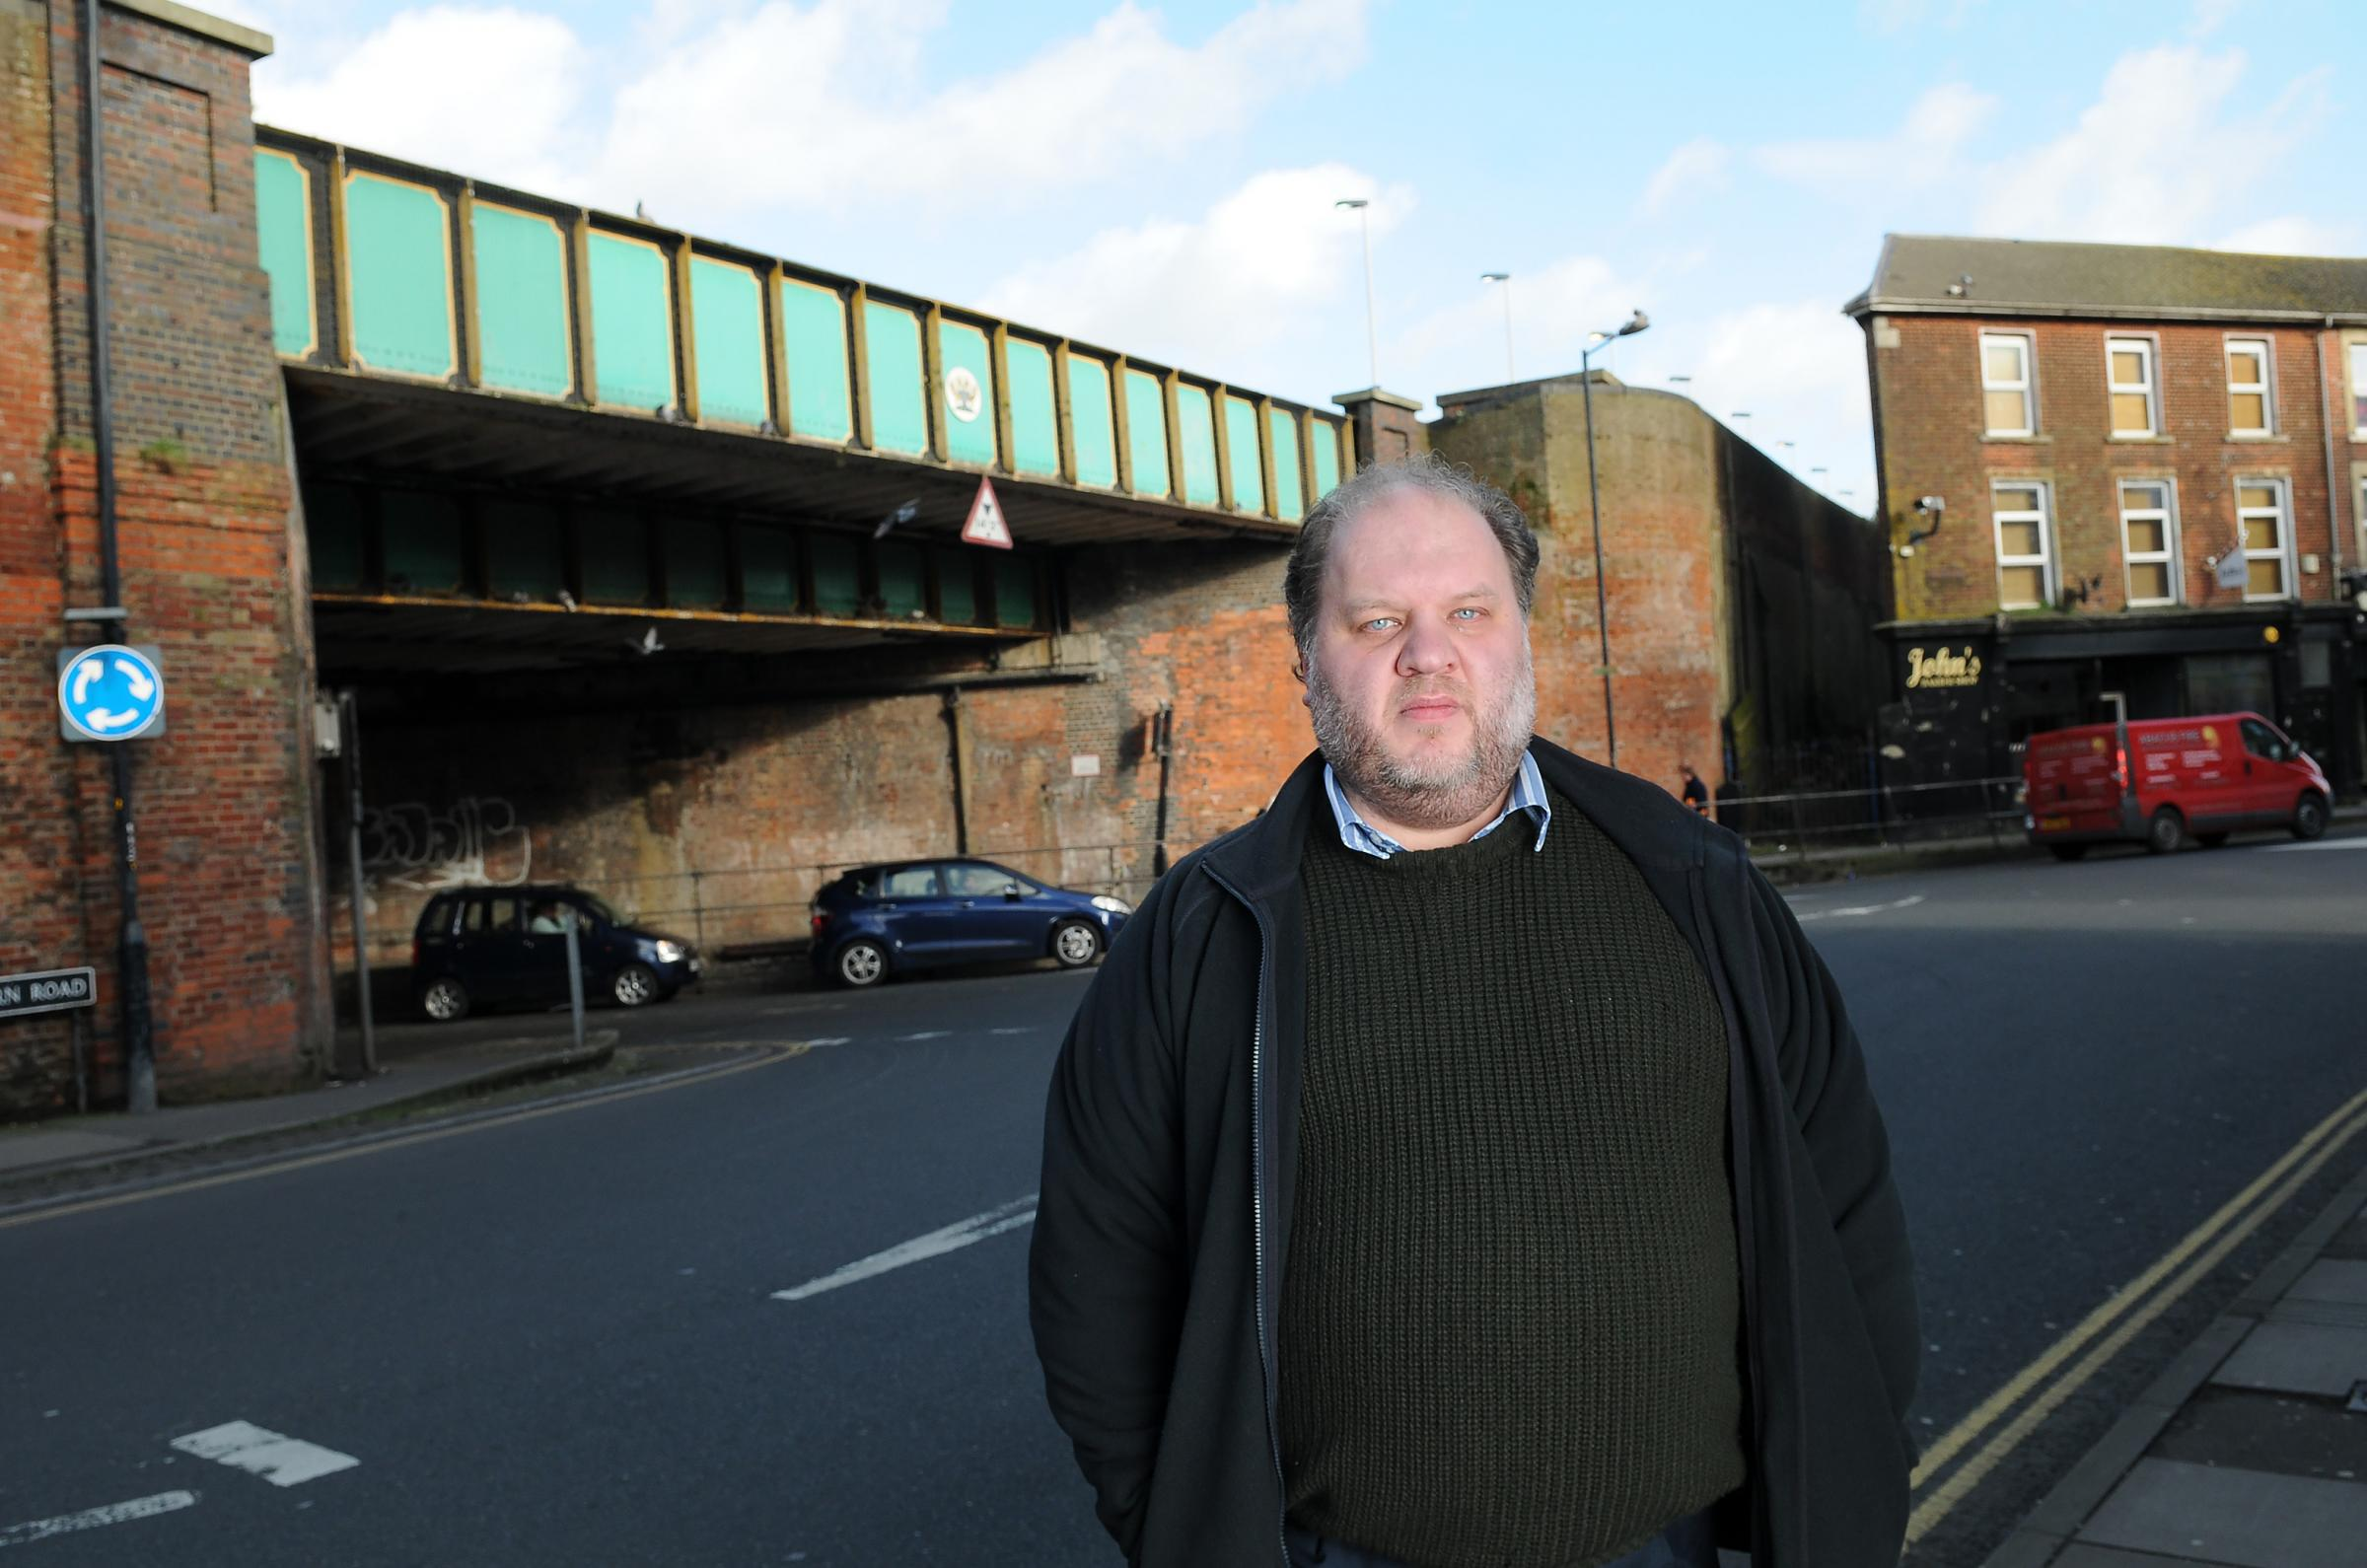 Cllr Matthew Dean at the Fisherton Street Bridge. DC7017P3..Picture by Tom Gregoy.